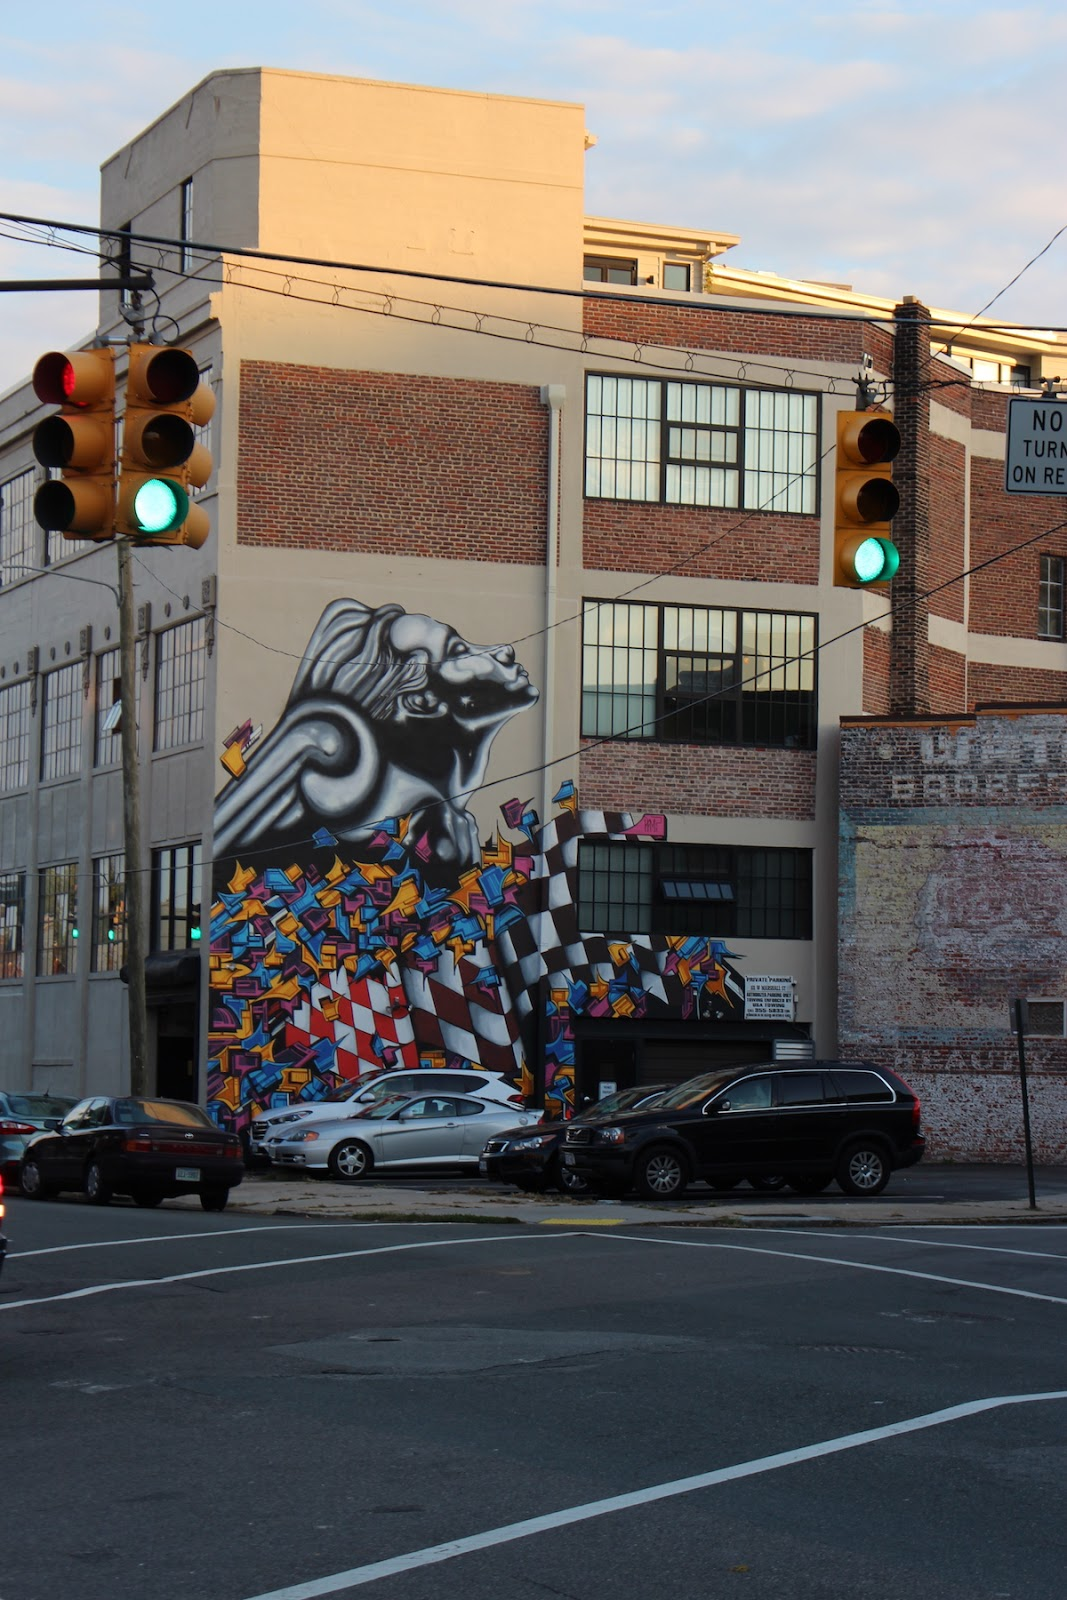 This is a photo of a street mural in Richmond Virginia.